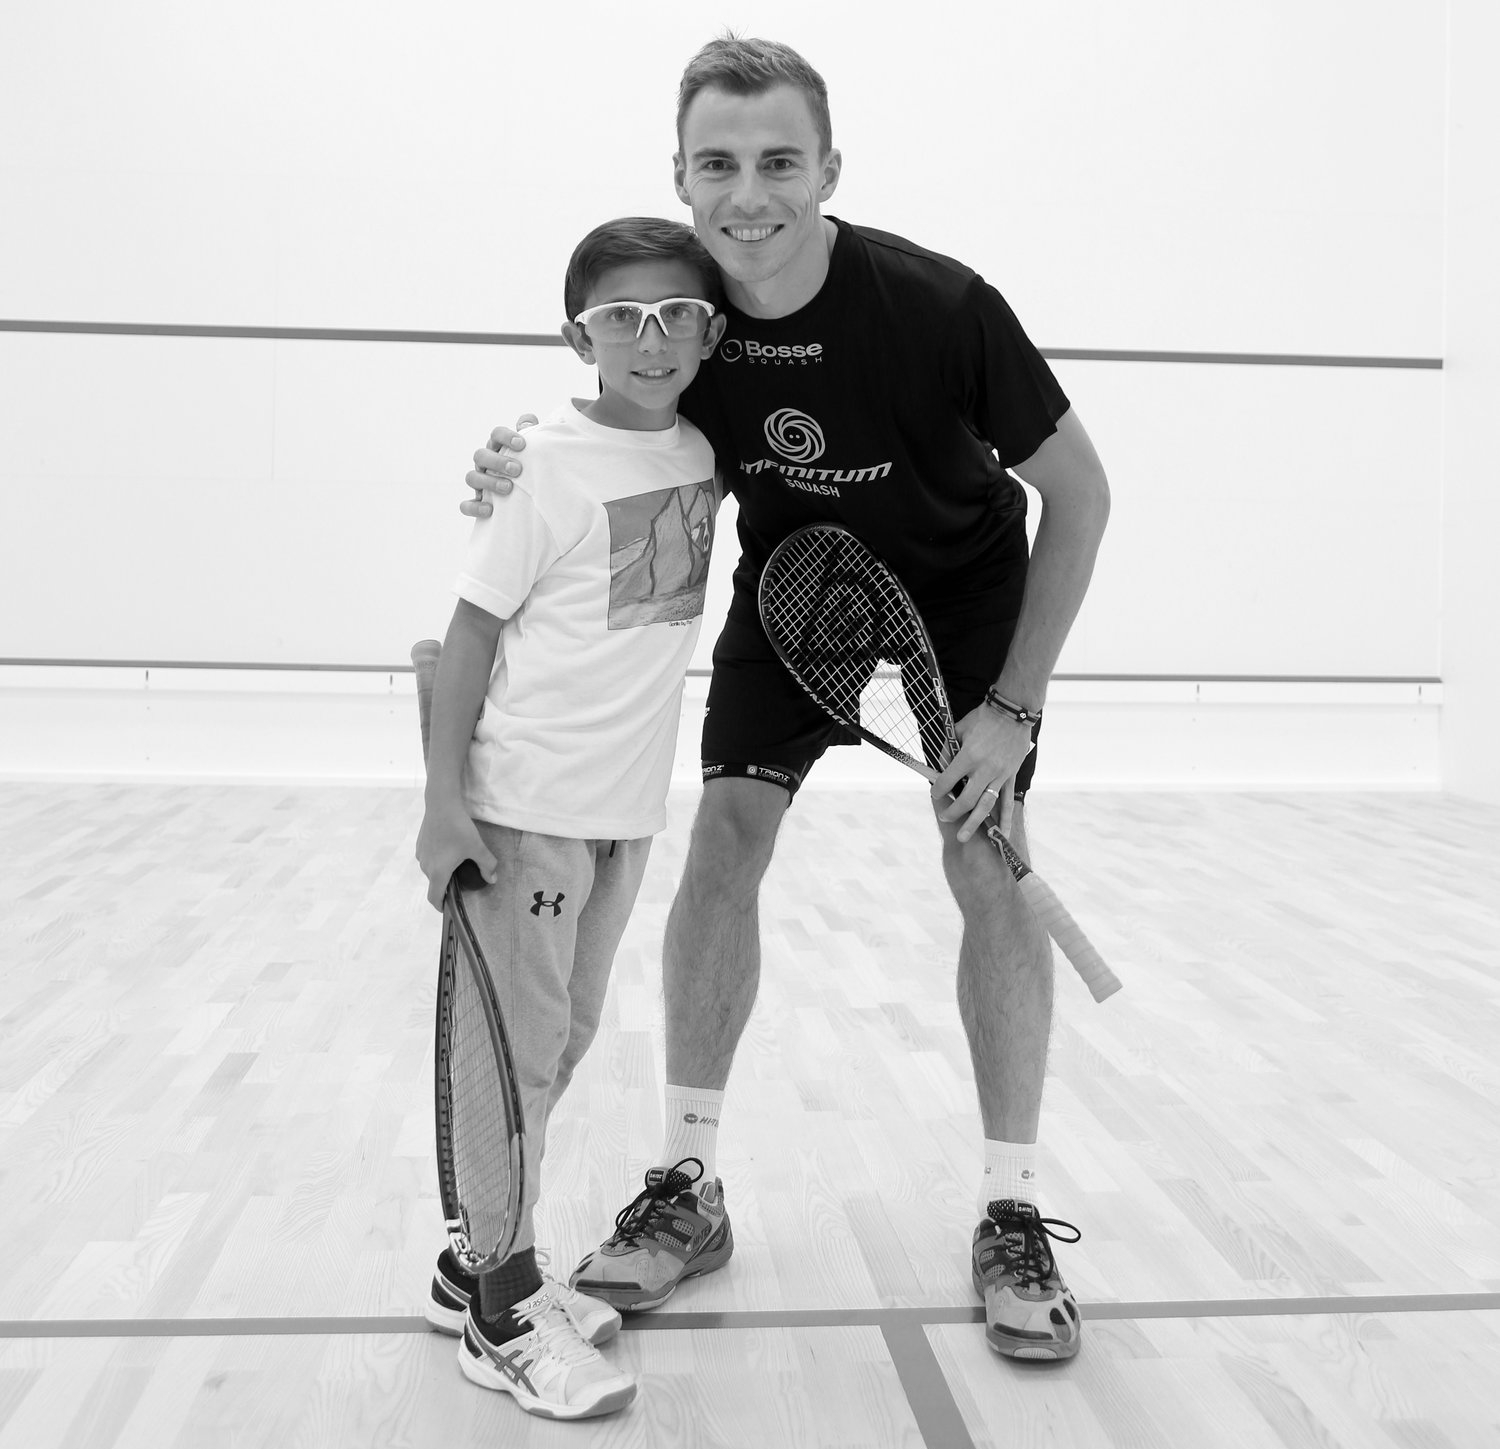 INFINITUM Squash Junior Academy player, Max Crowe. Pictured here at the INFINITUM Squash Opening Exhibition in October with 3X World Champion, Nick Matthew.